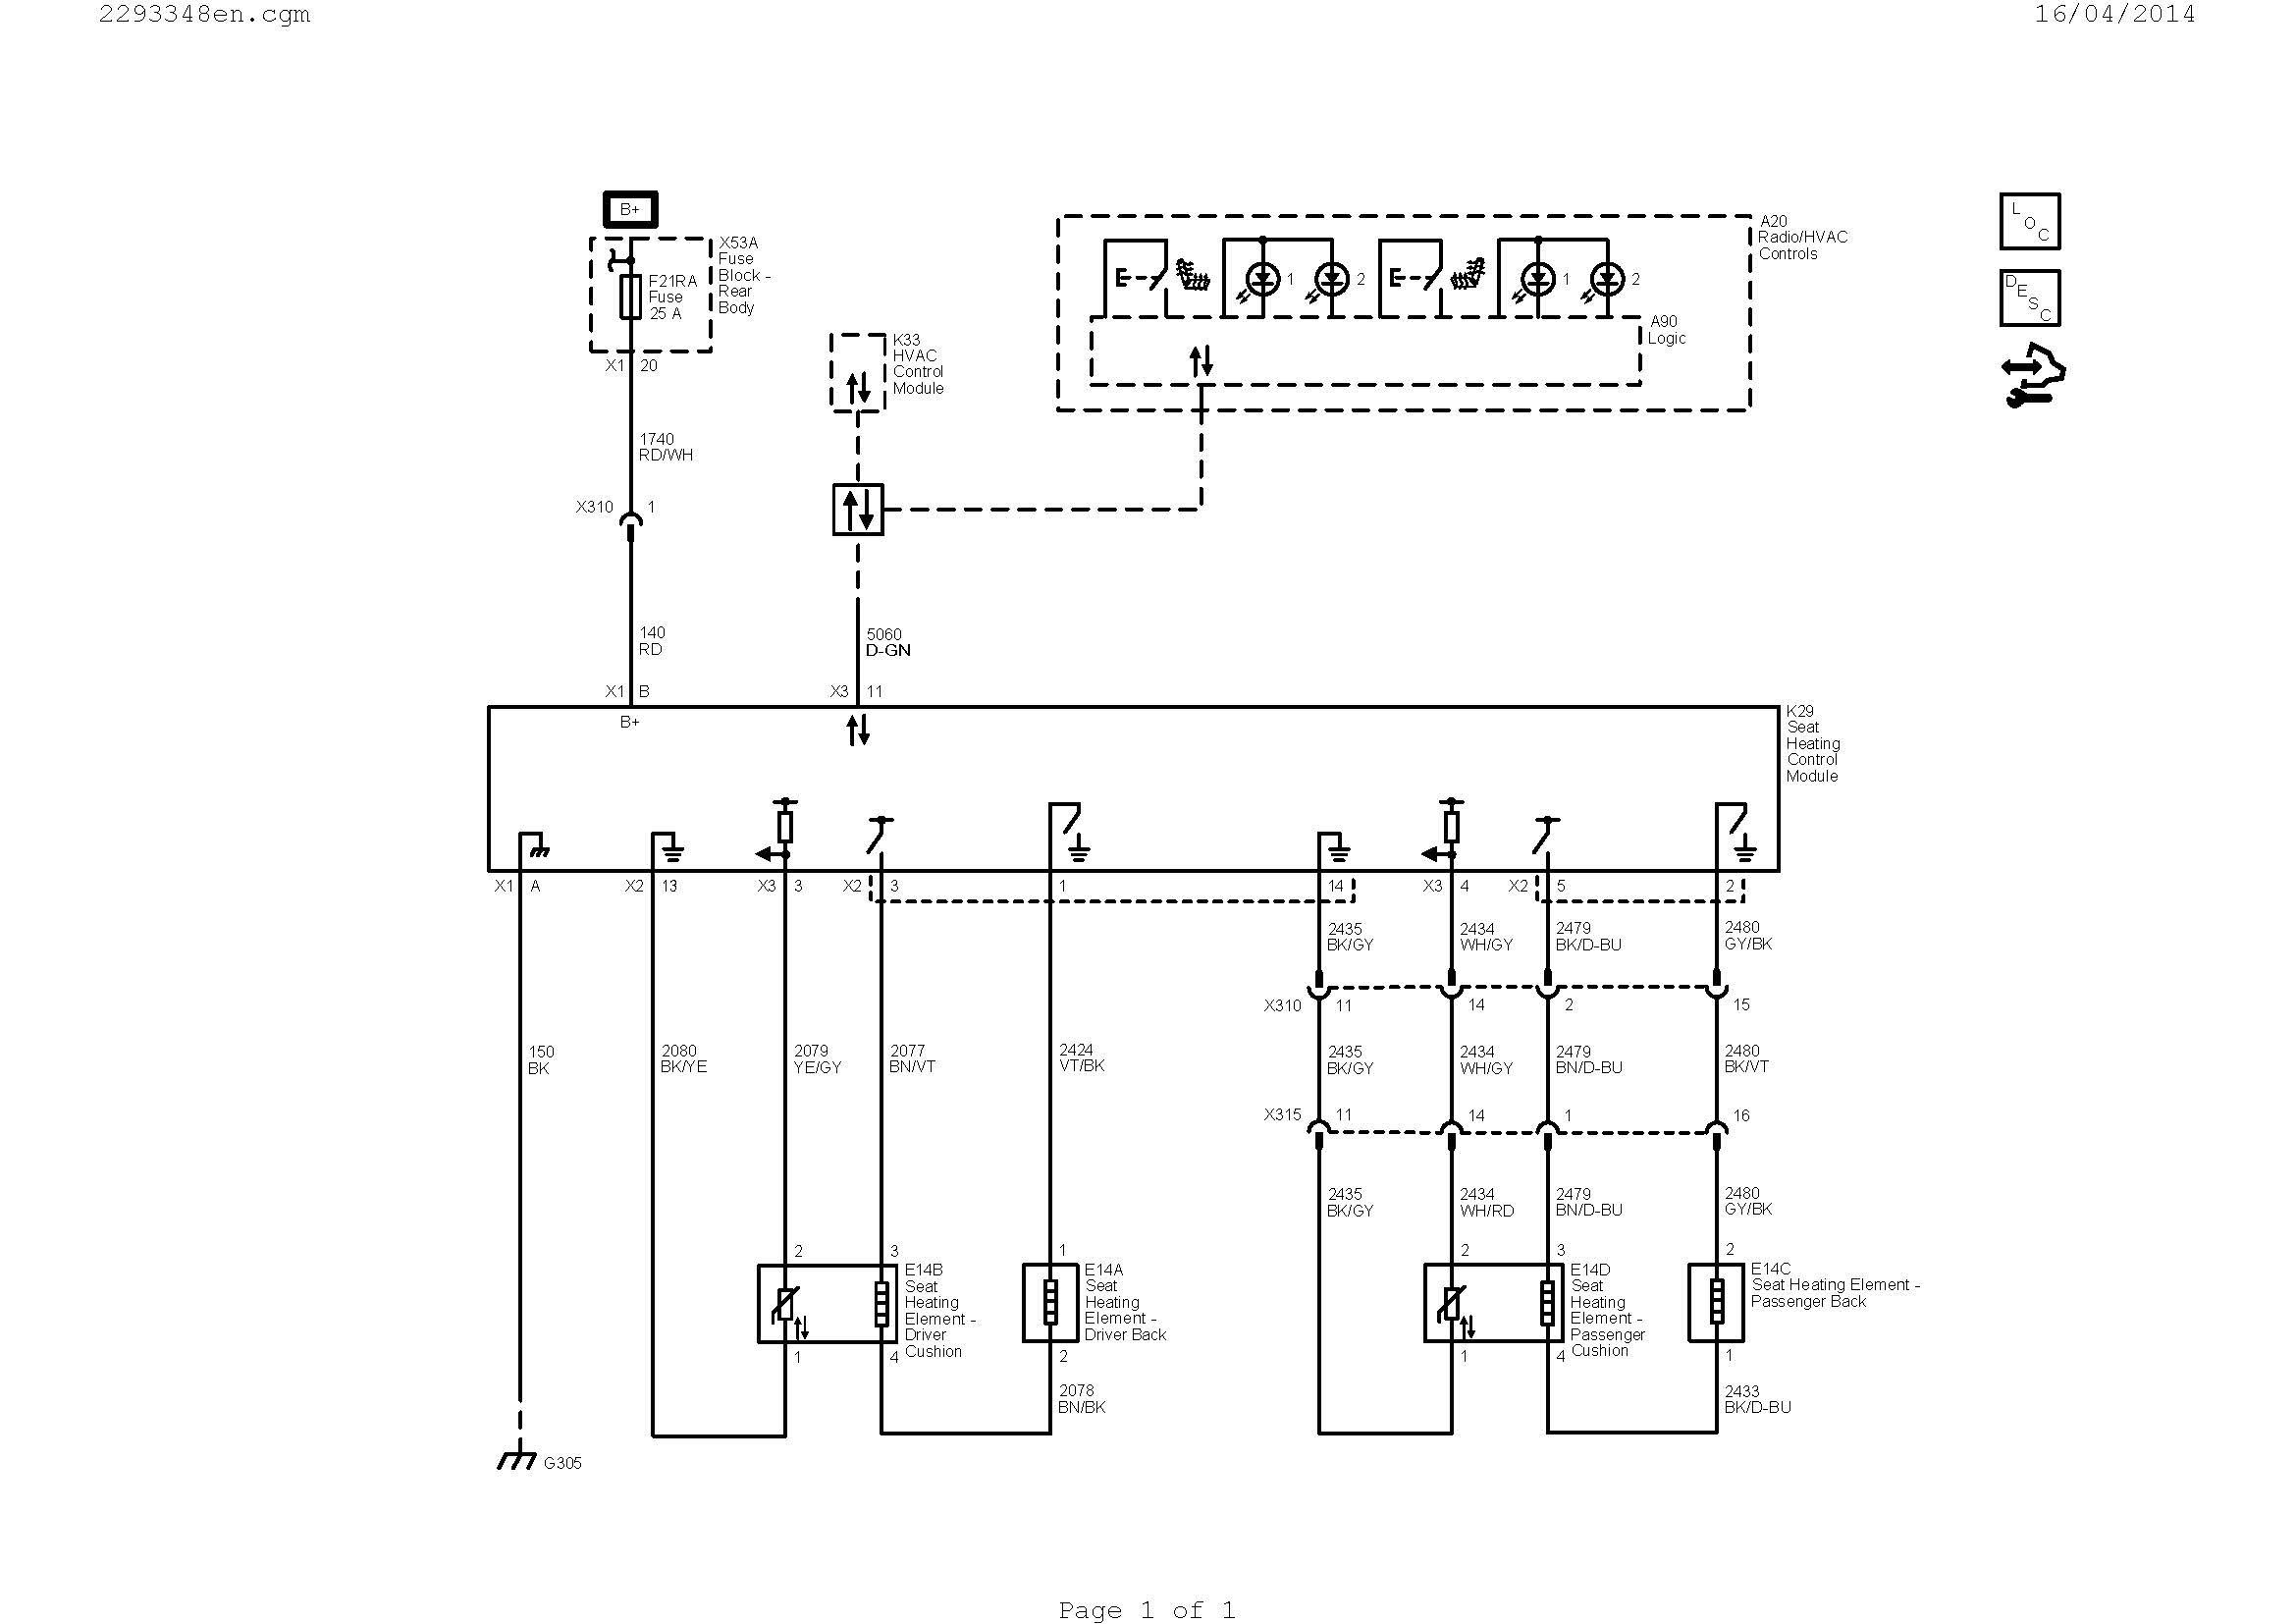 surge protection device wiring diagram Collection-electrical wiring diagram Wiring A Ac Thermostat Diagram New Wiring Diagram Ac Valid Hvac Diagram DOWNLOAD Wiring Diagram Details 16-s